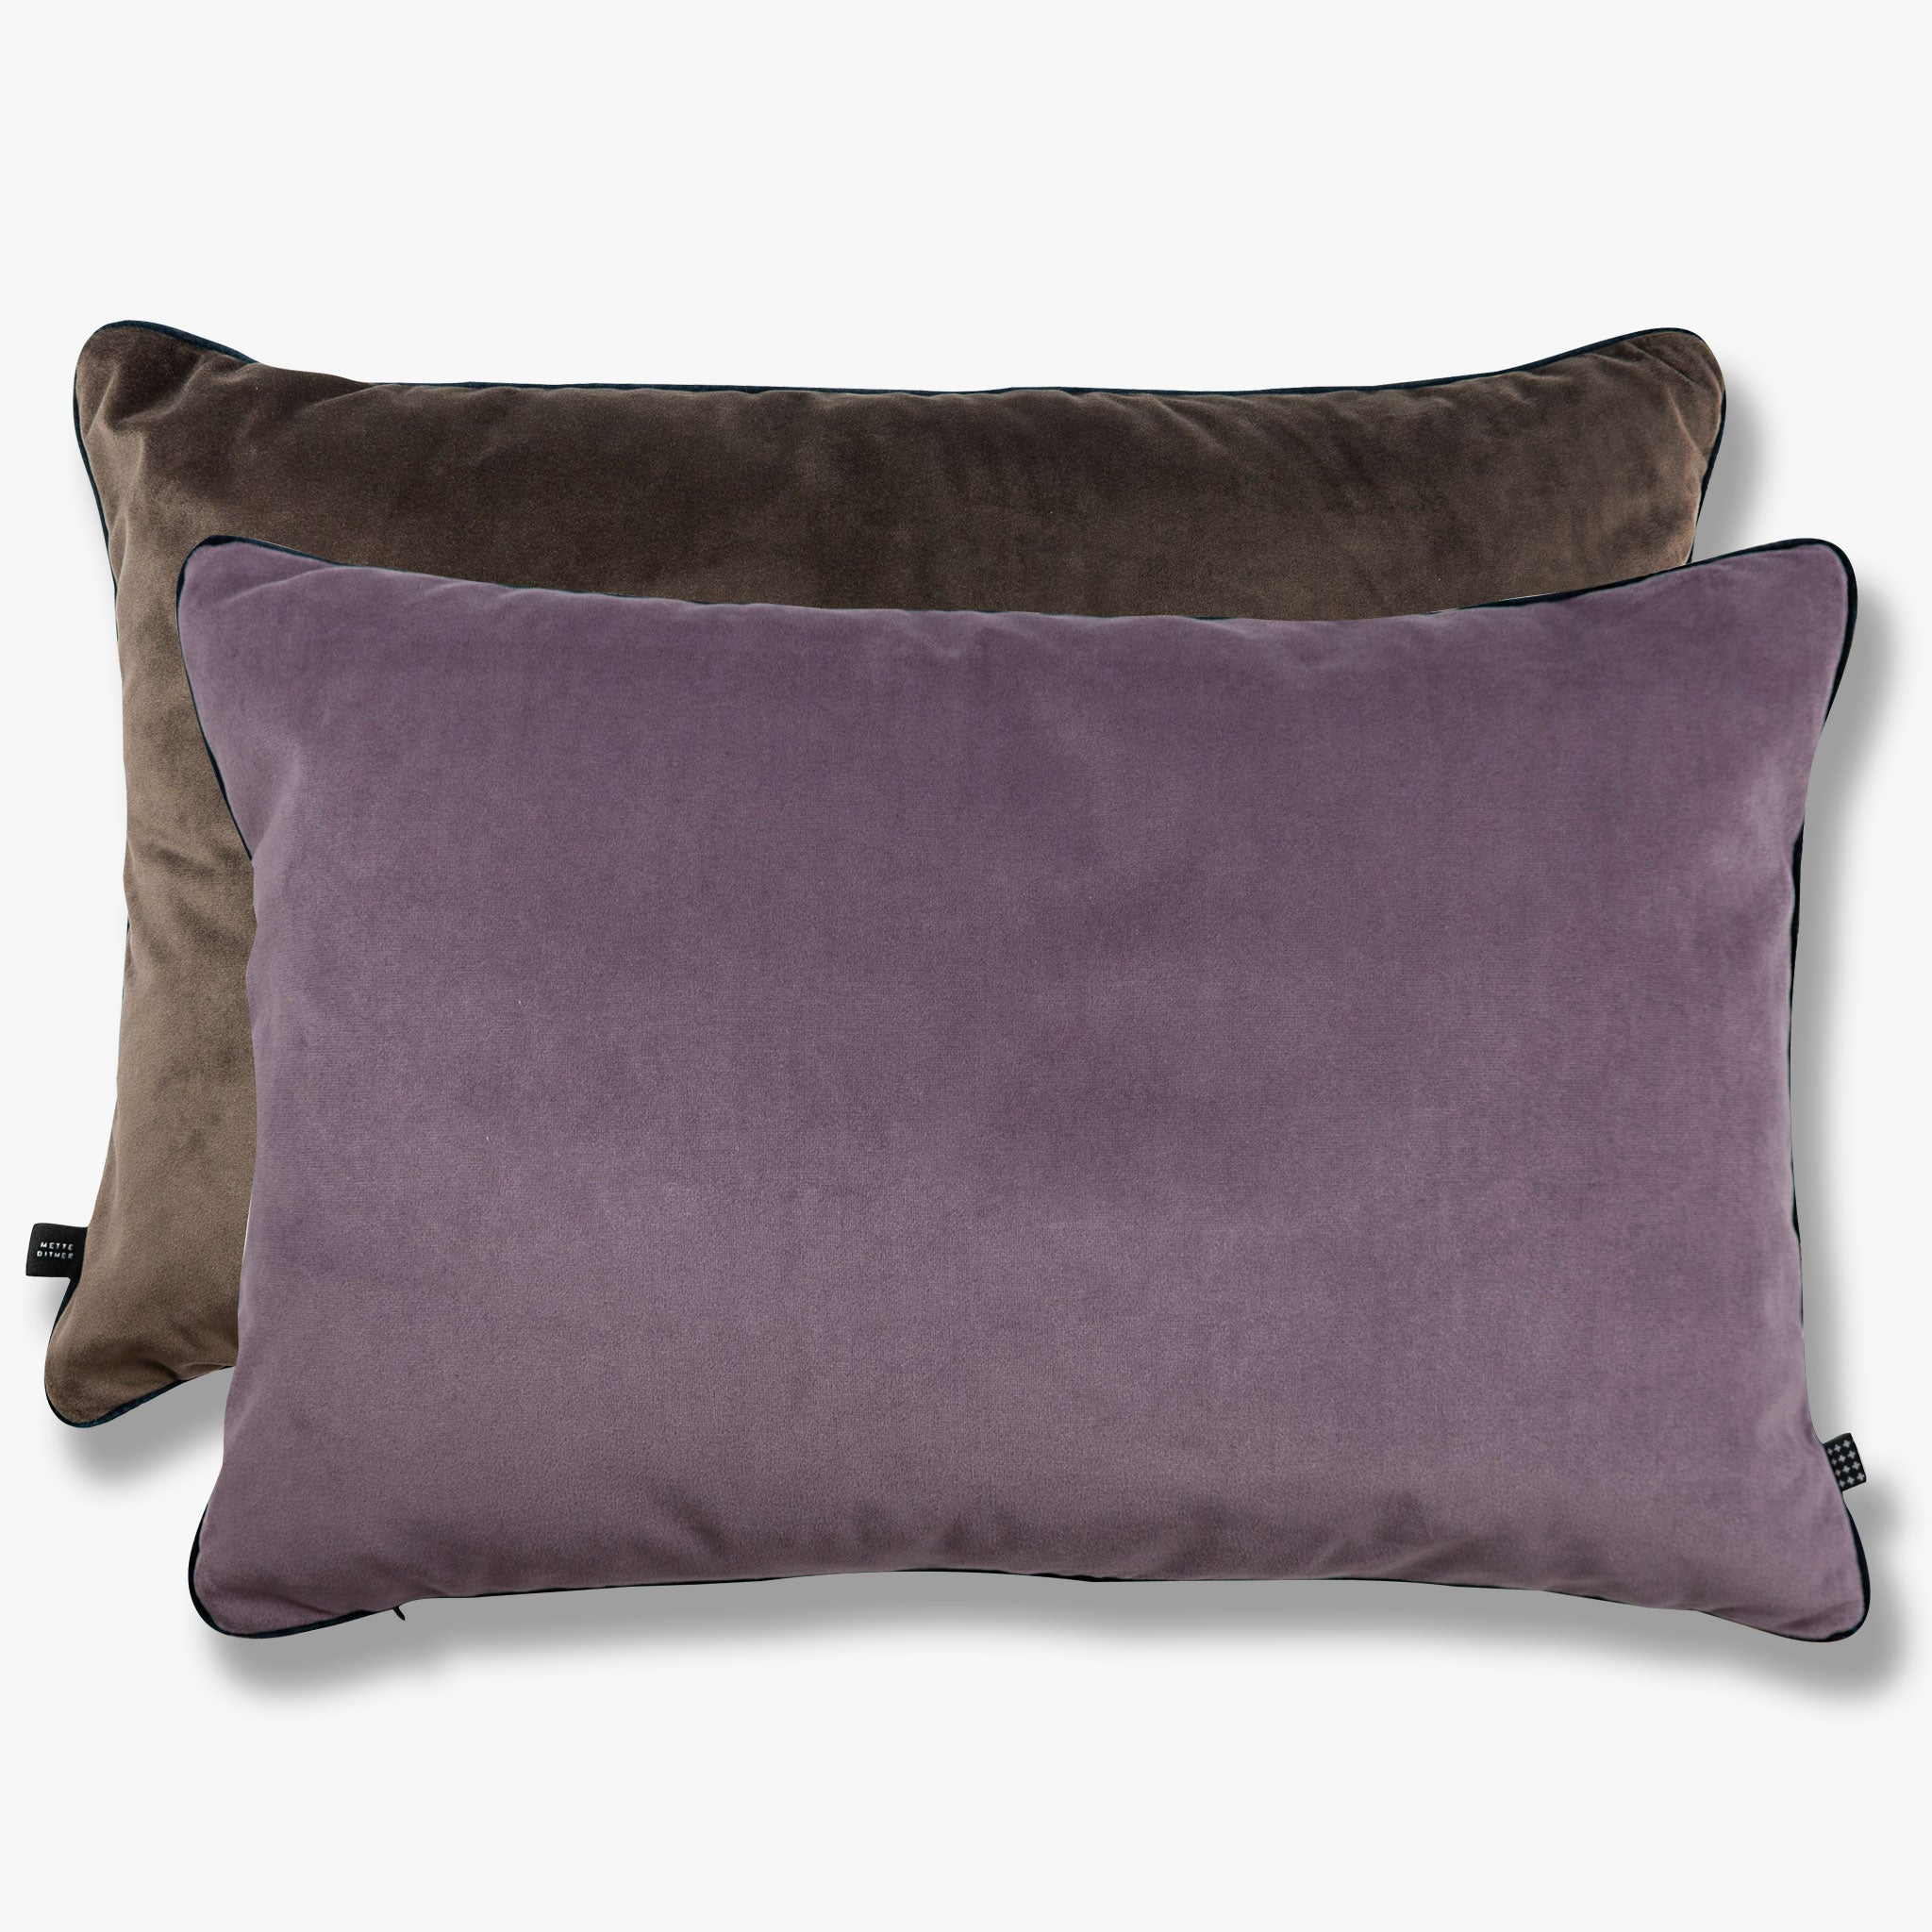 BLOCK Pude, lilac/brown